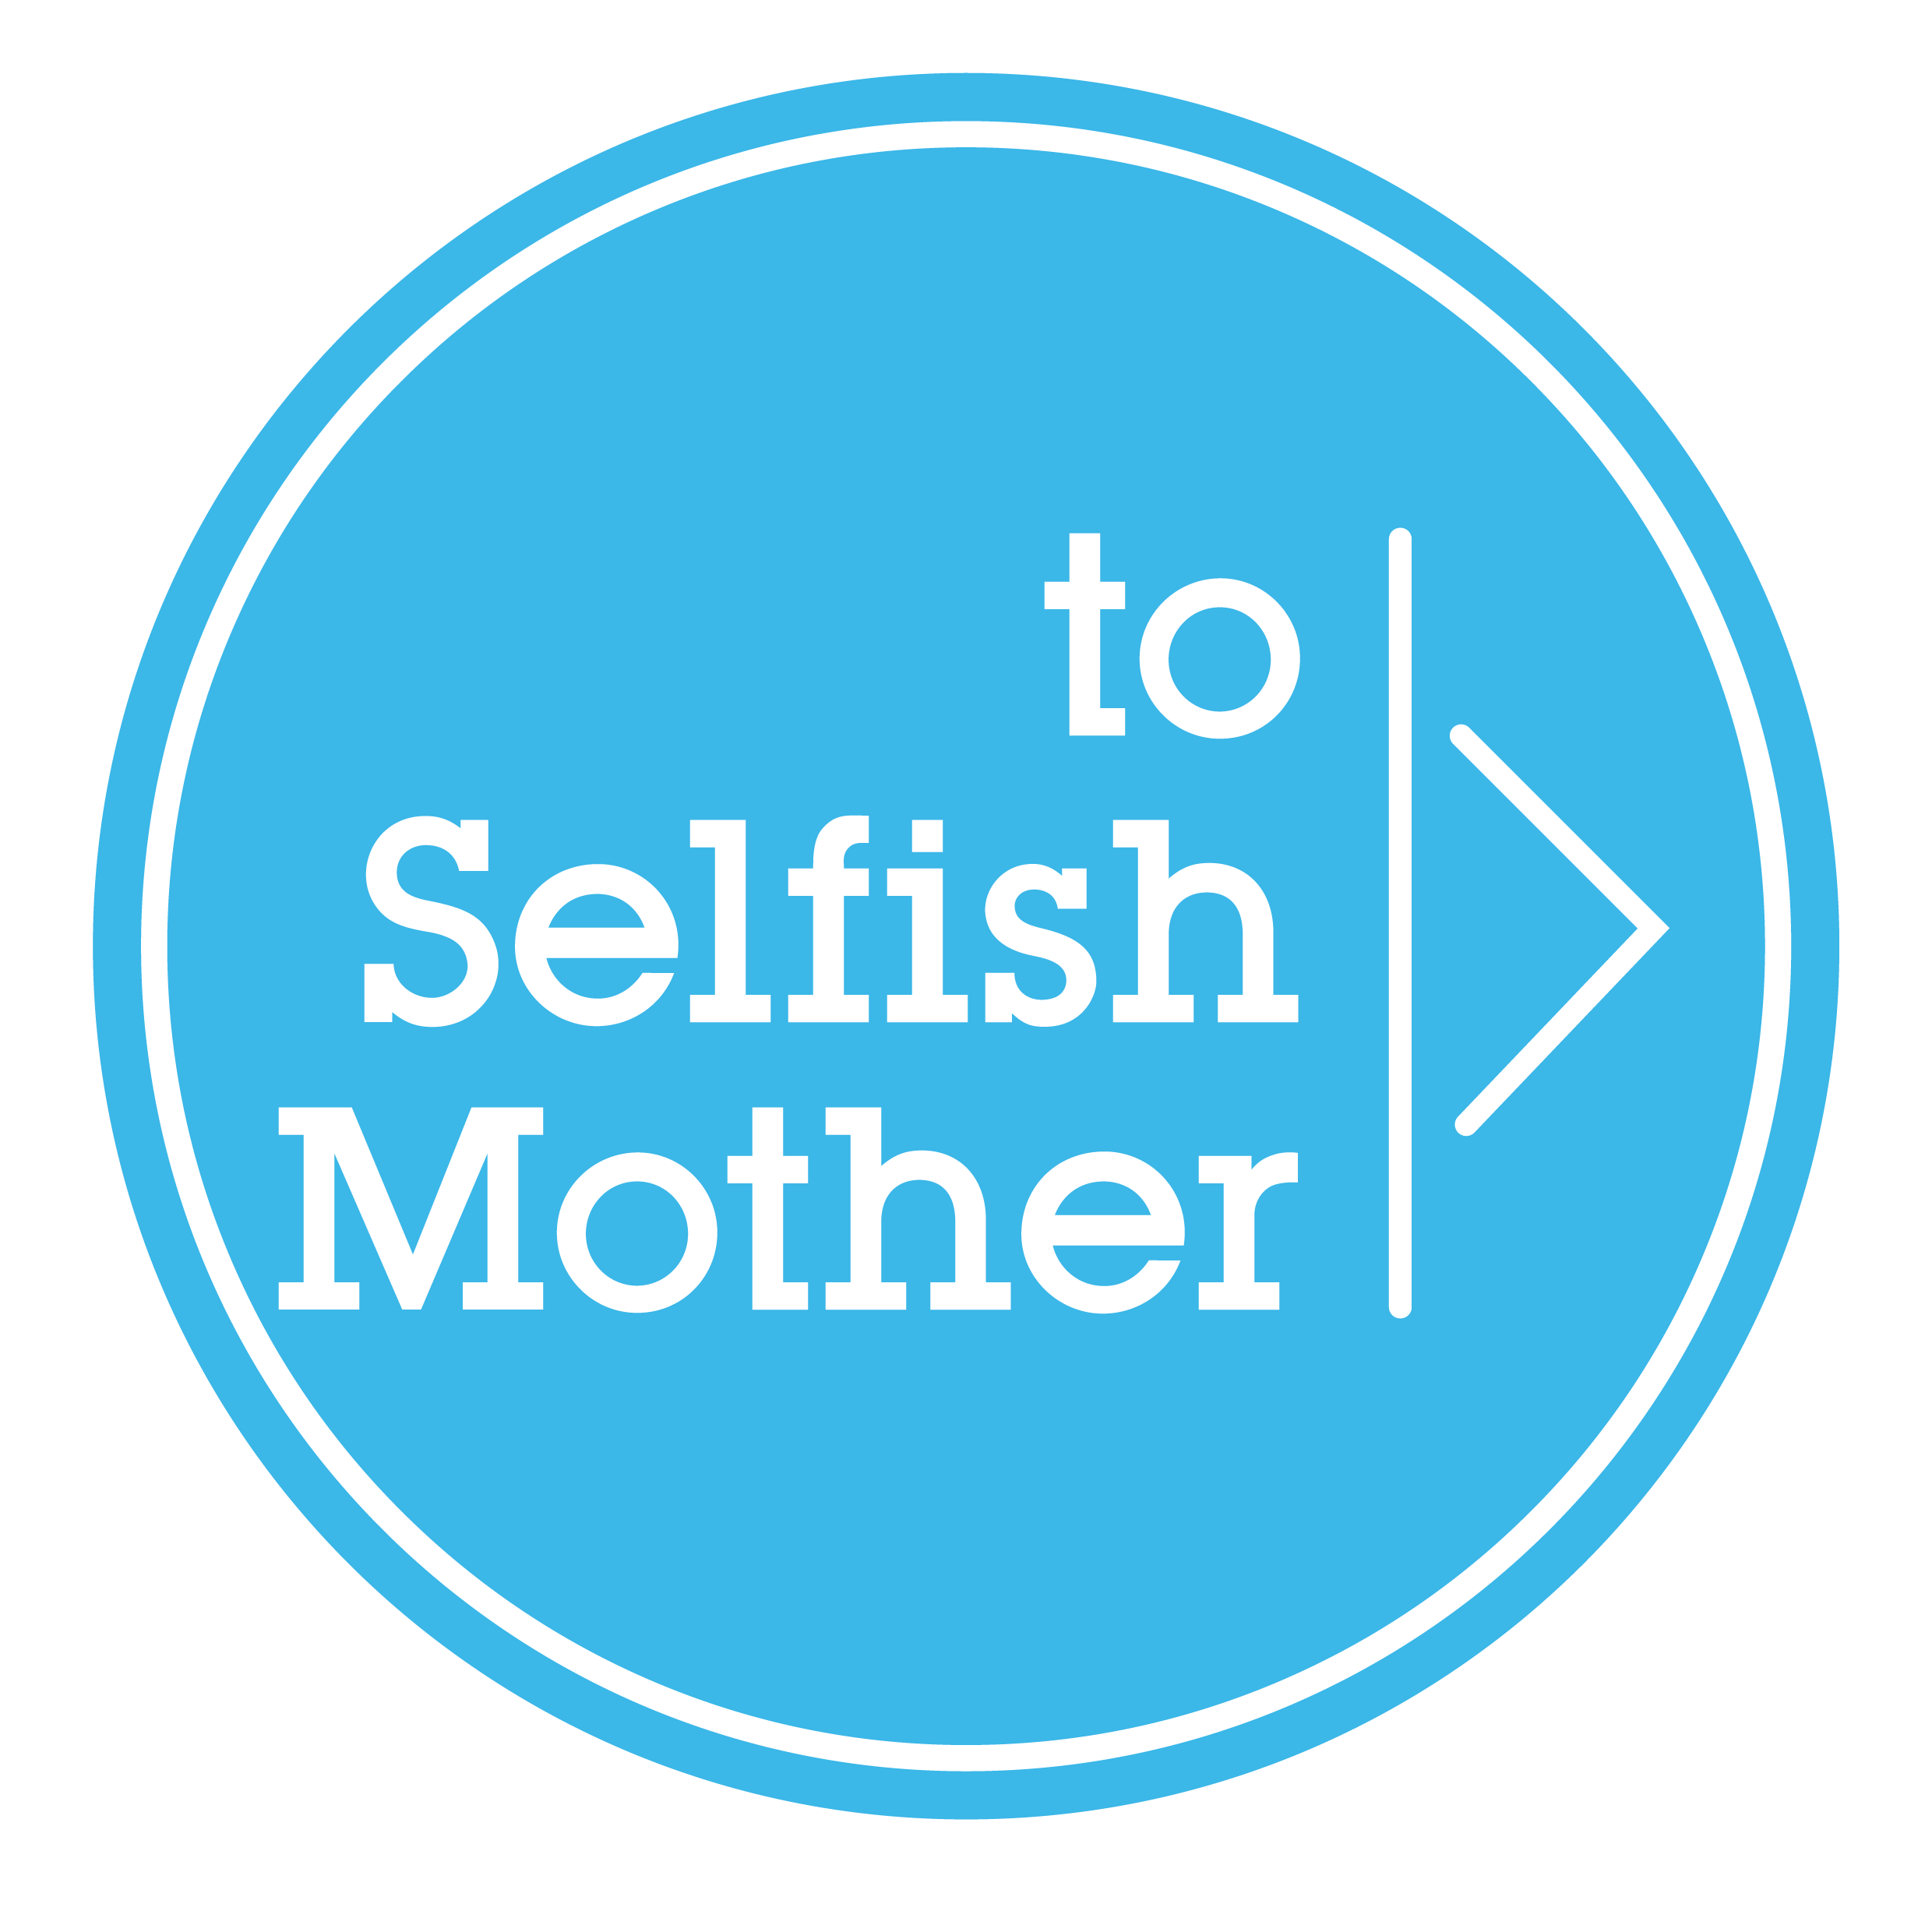 To Selfish Mother